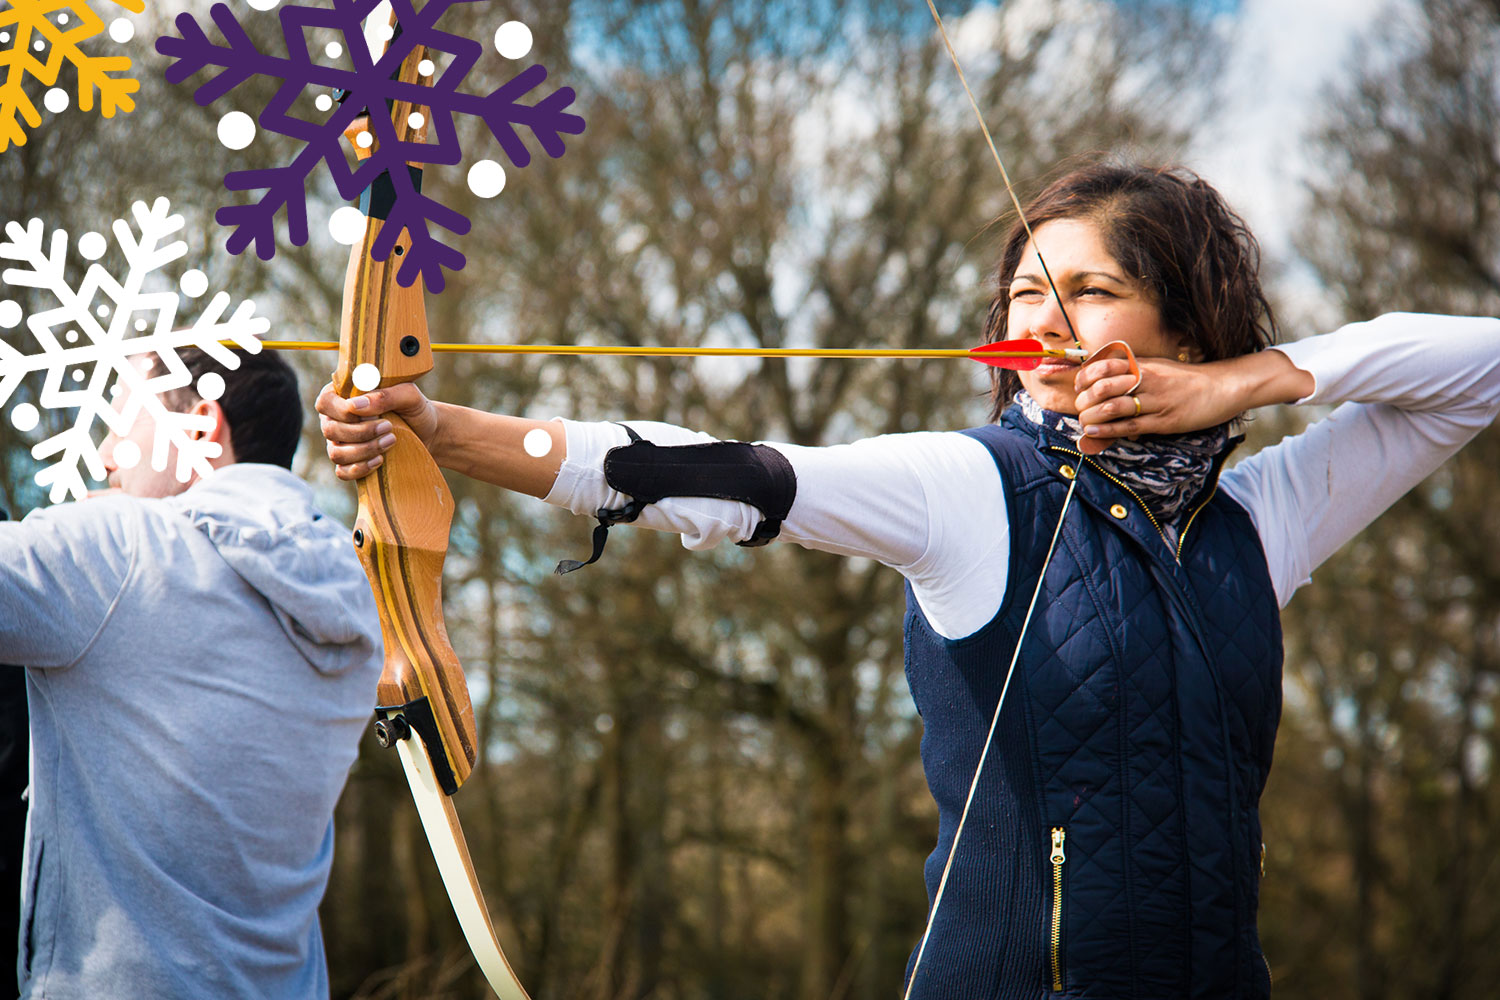 Christmas parties in the great outdoors can include activities like archery